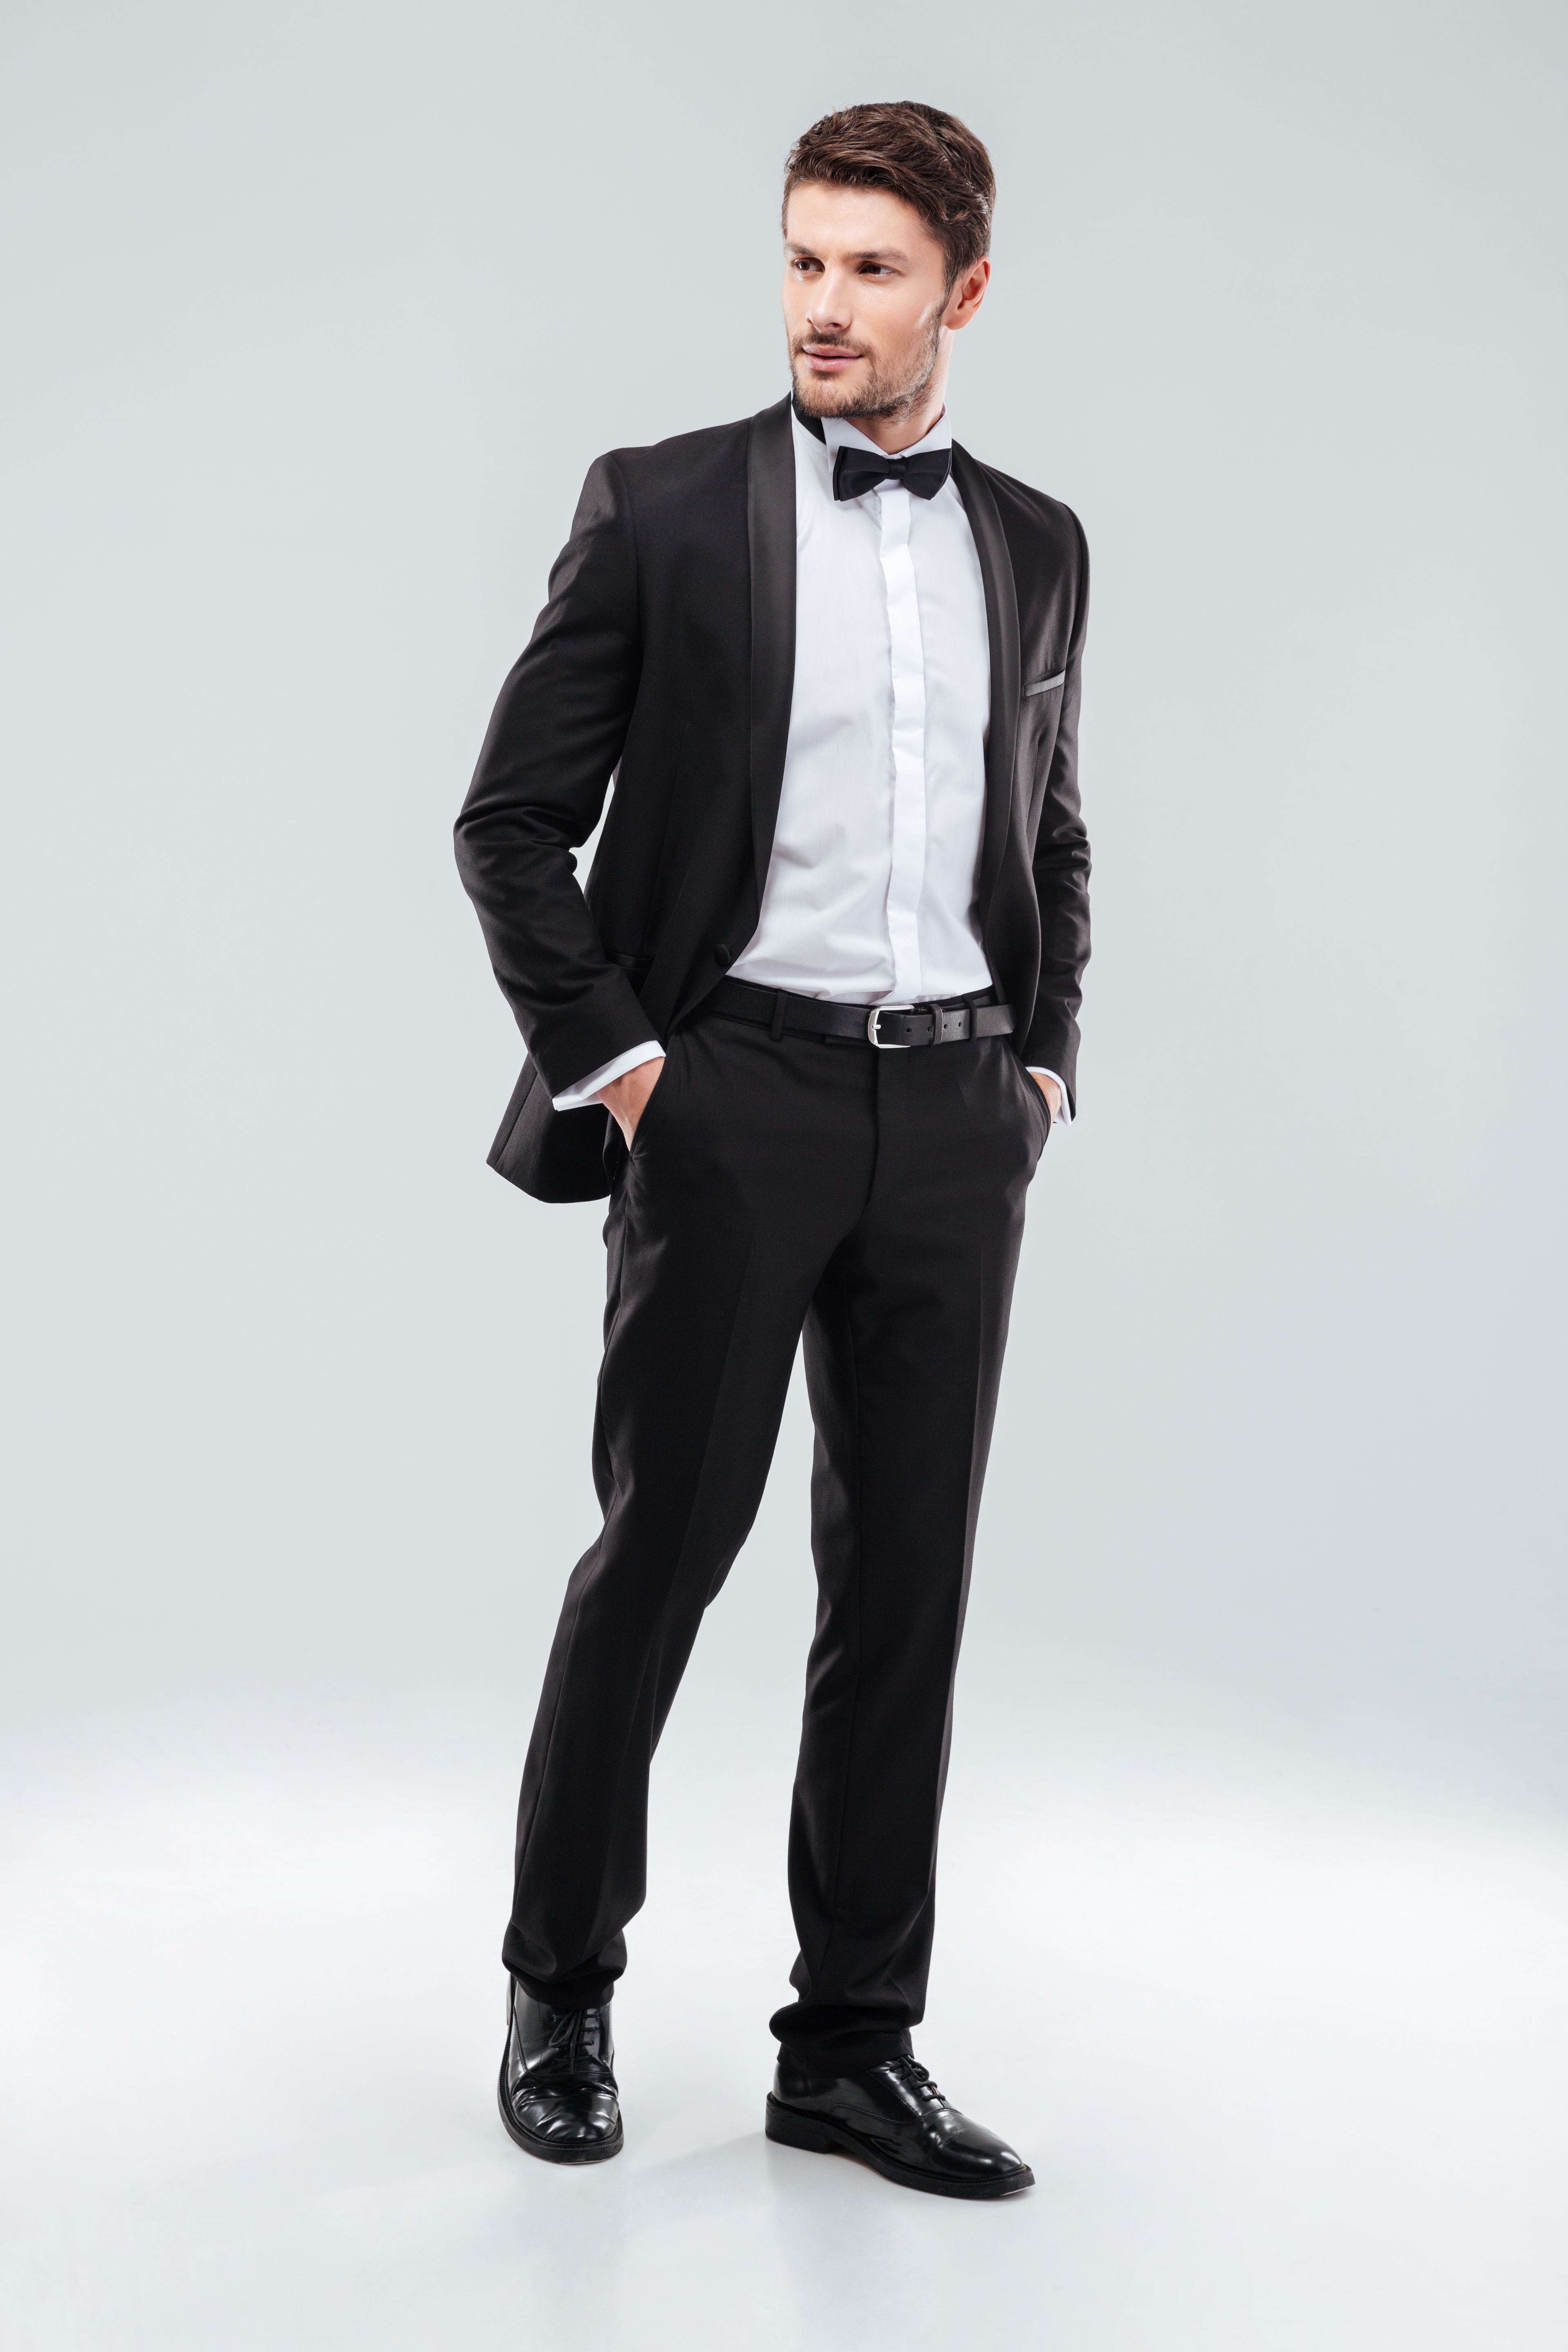 Five Tuxedo Styles: From Traditional to Hipster | Country Club ...